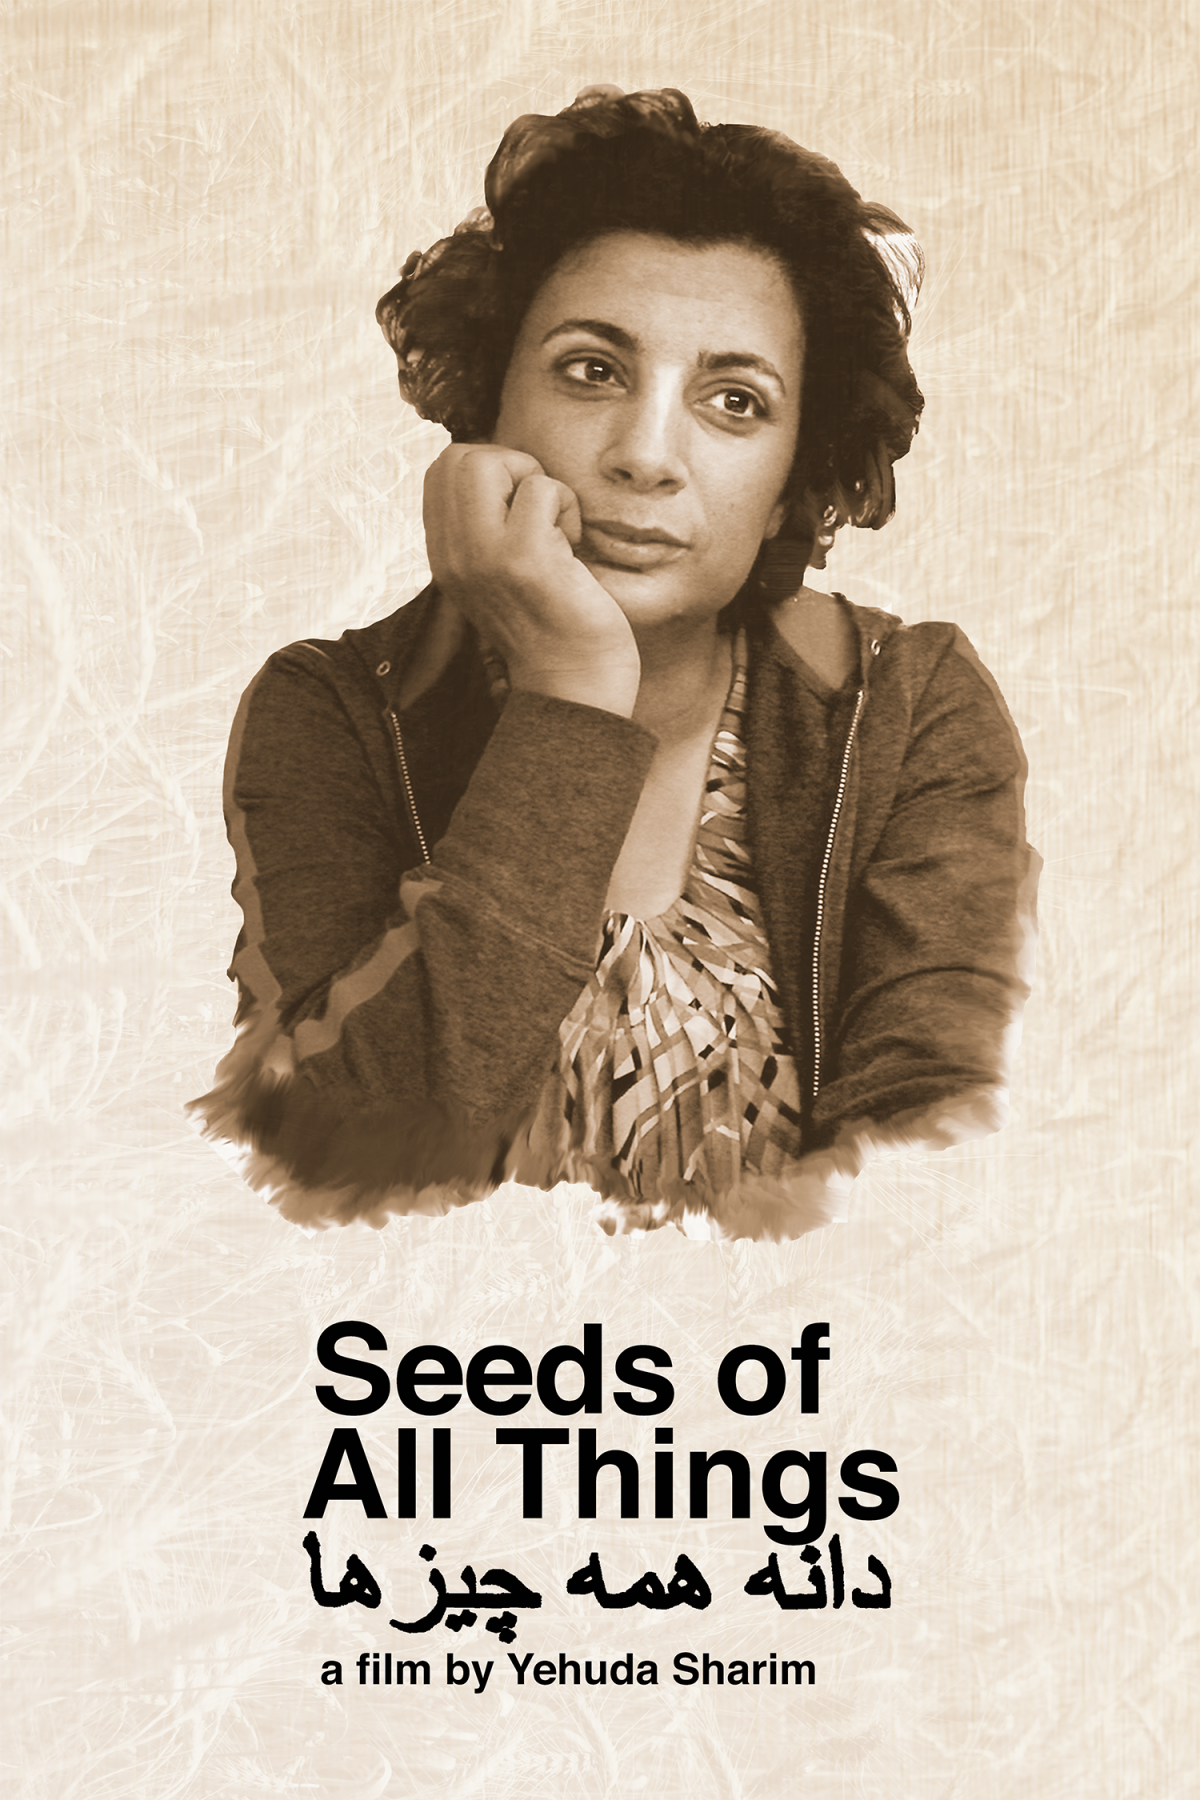 Seeds of All Things